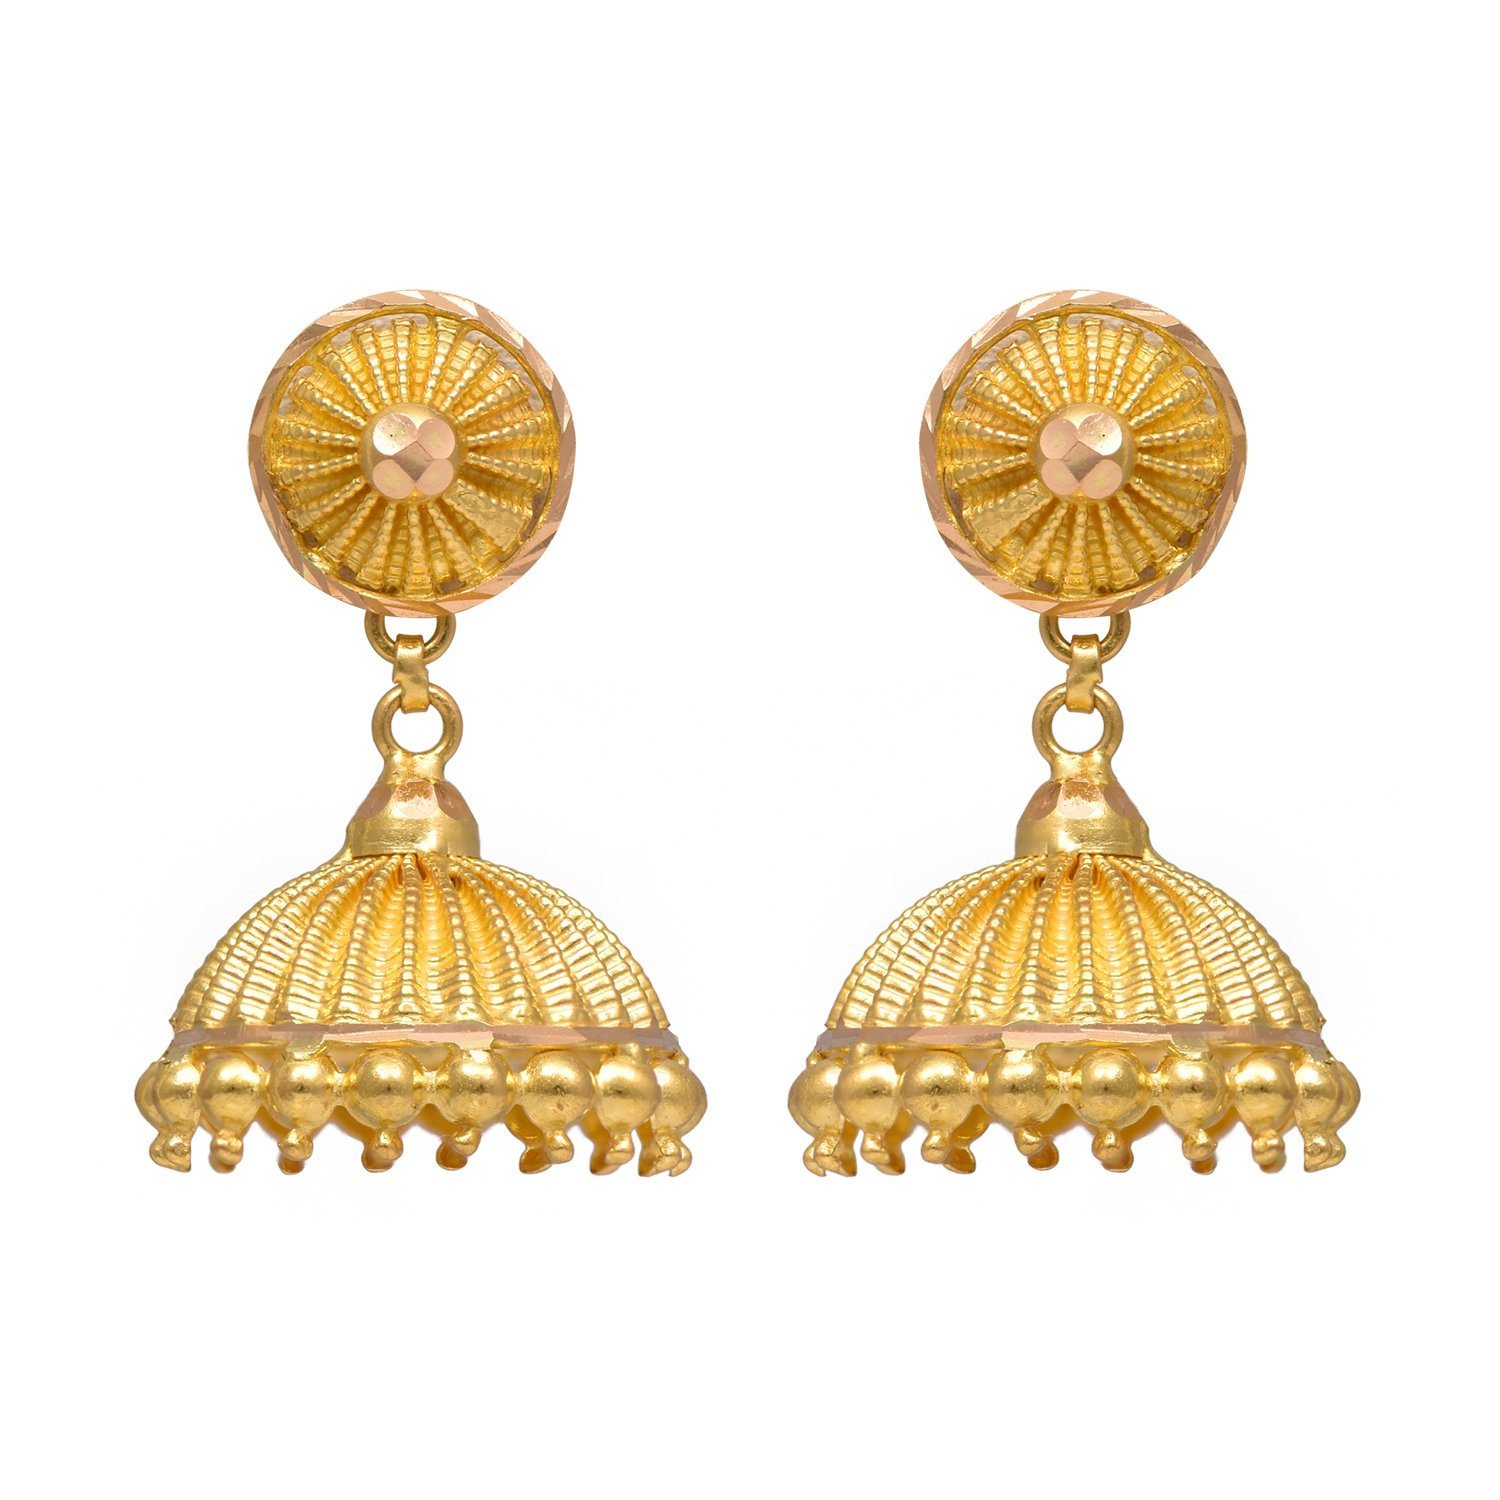 women plated jewellery itm par jhumka gold earrings amz indian jewelry bollywood earring wedding